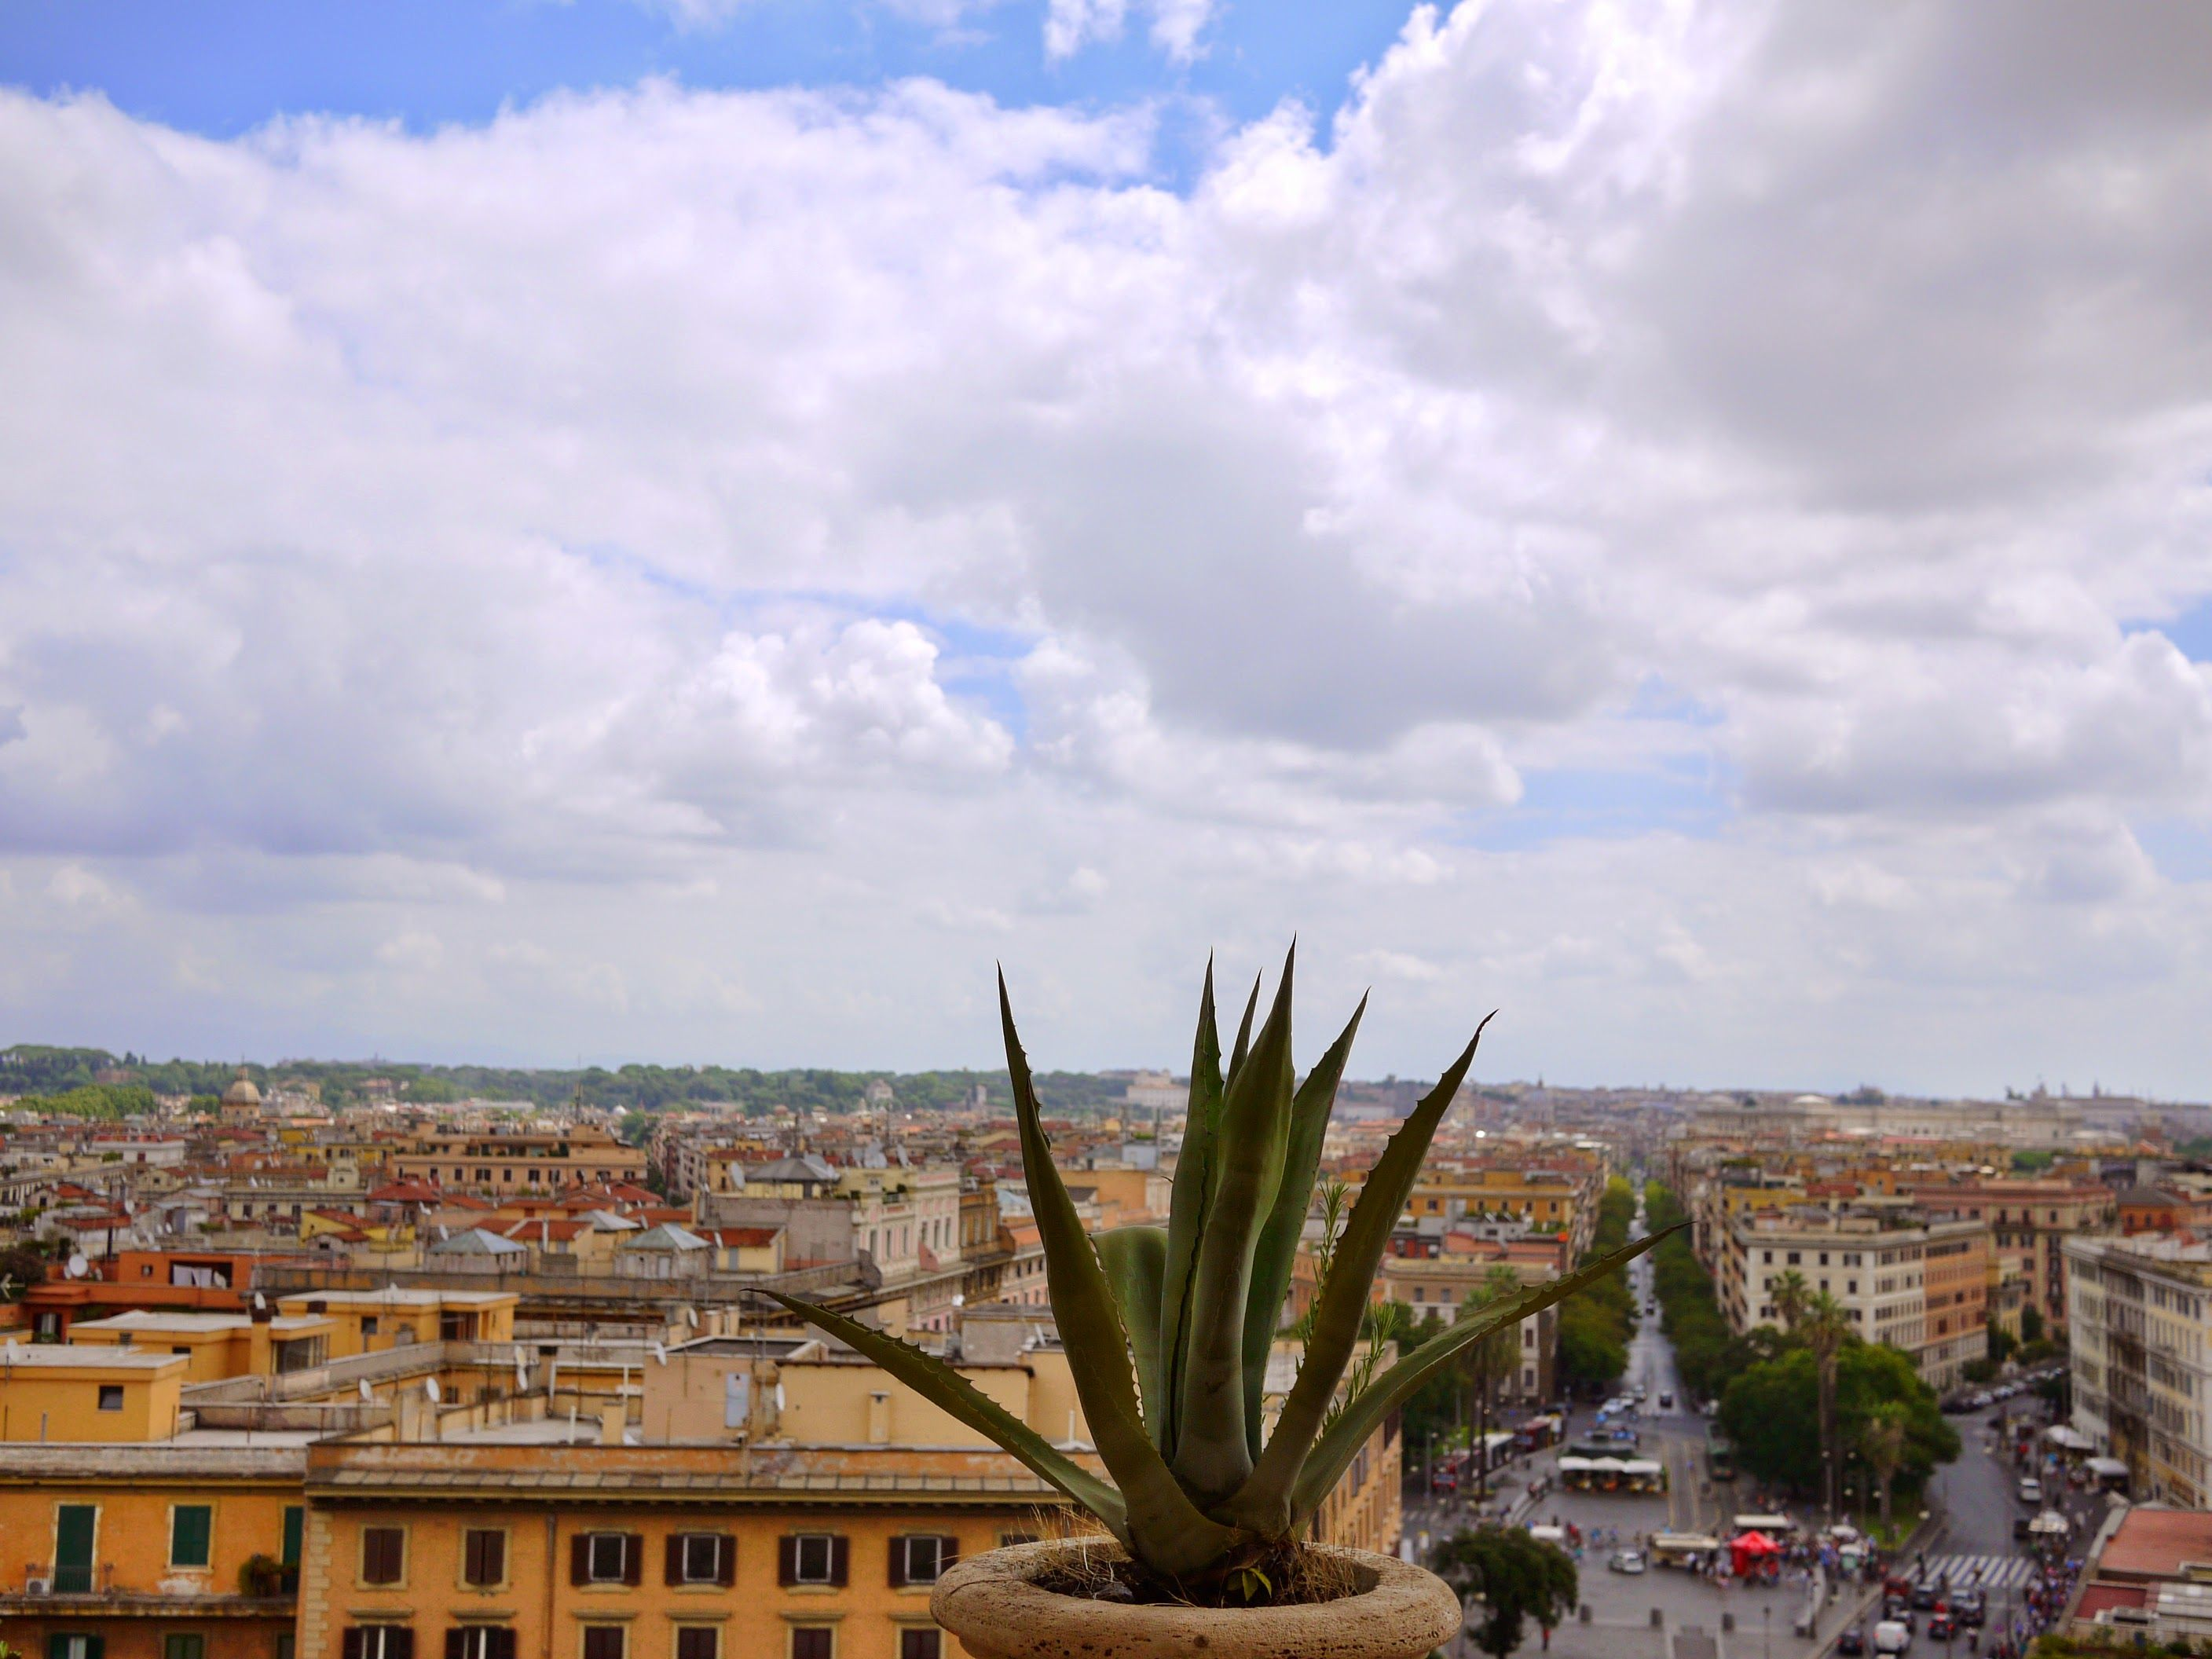 View from inside the Vatican Museums, looking out at Rome